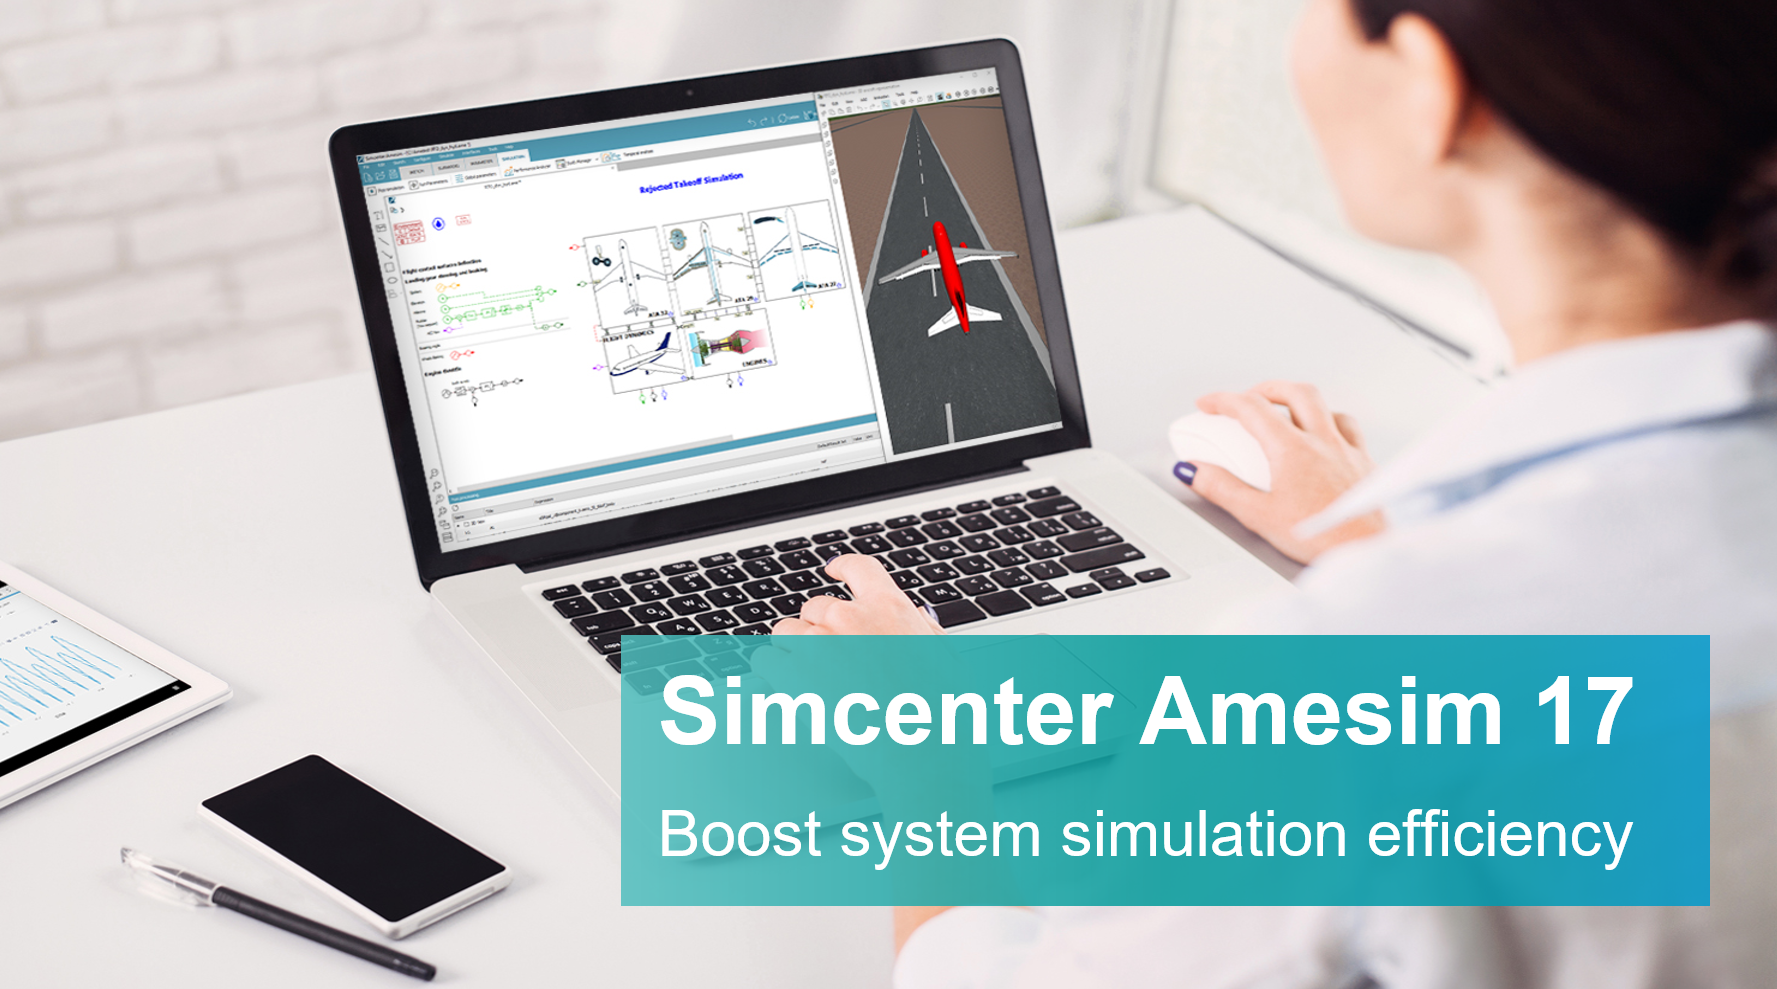 Simcenter-Amesim-17-Boost_system-simulation-efficiency.png